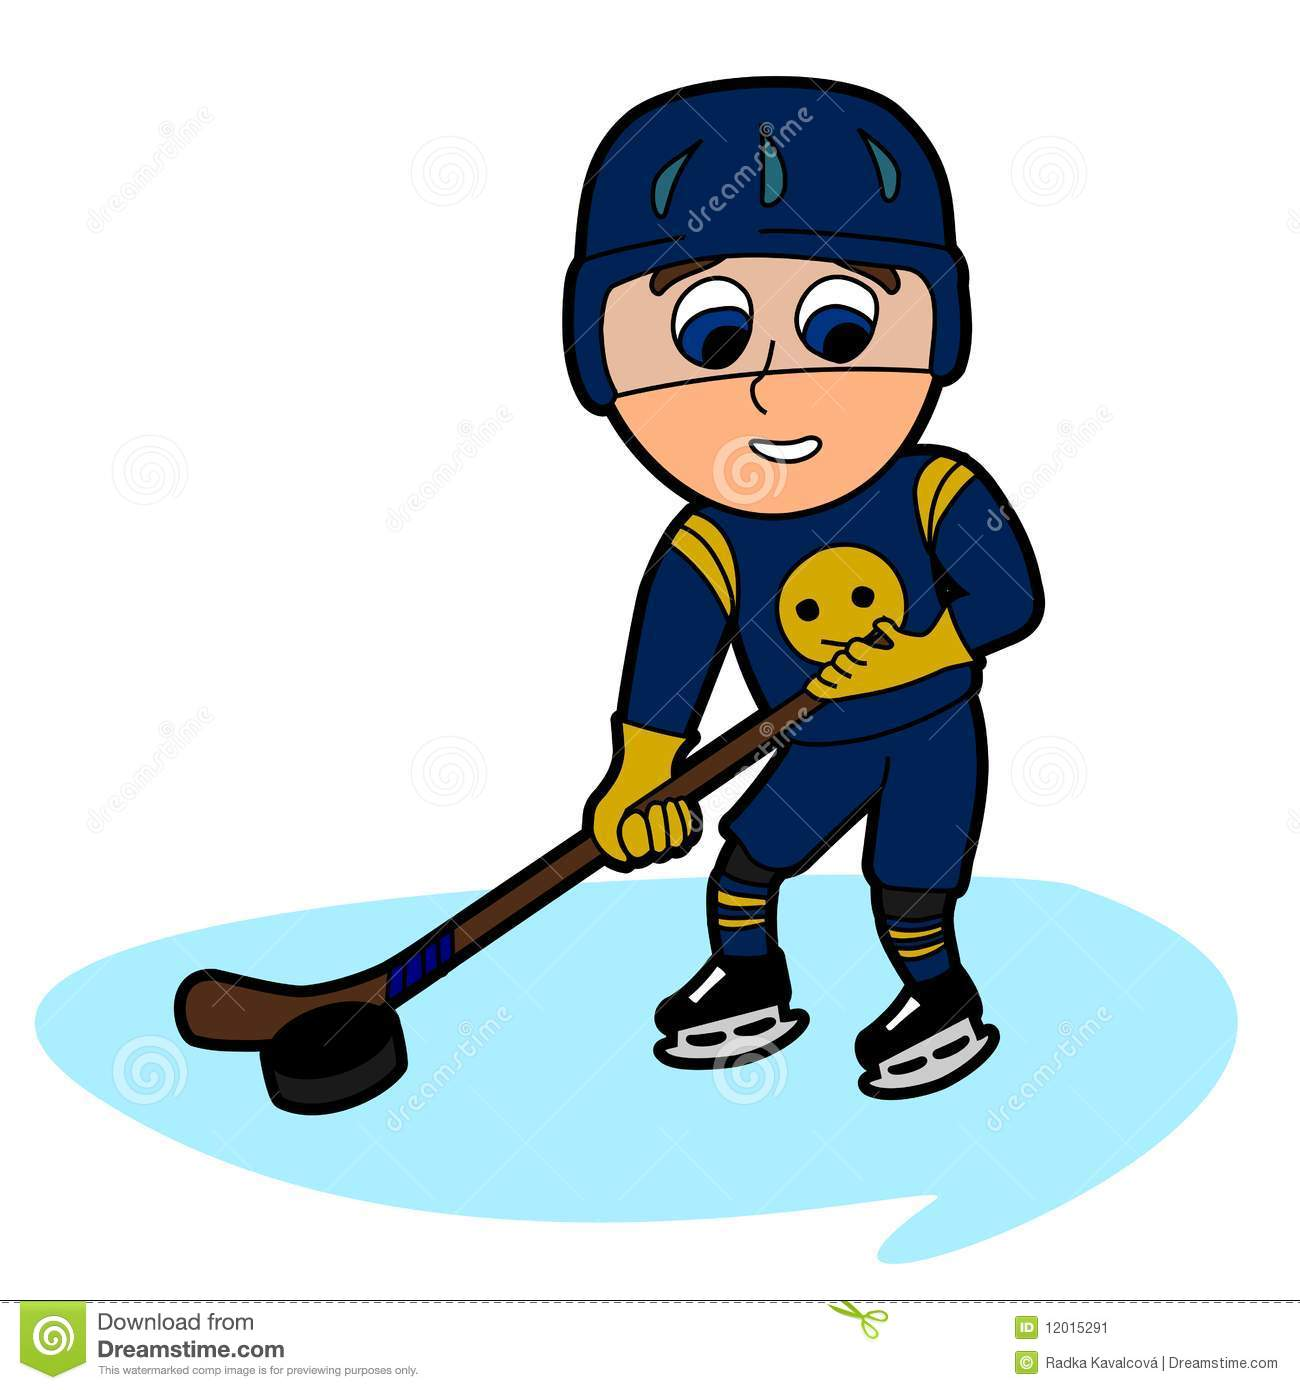 cartoon man in hockey form on skates with a stick Stock